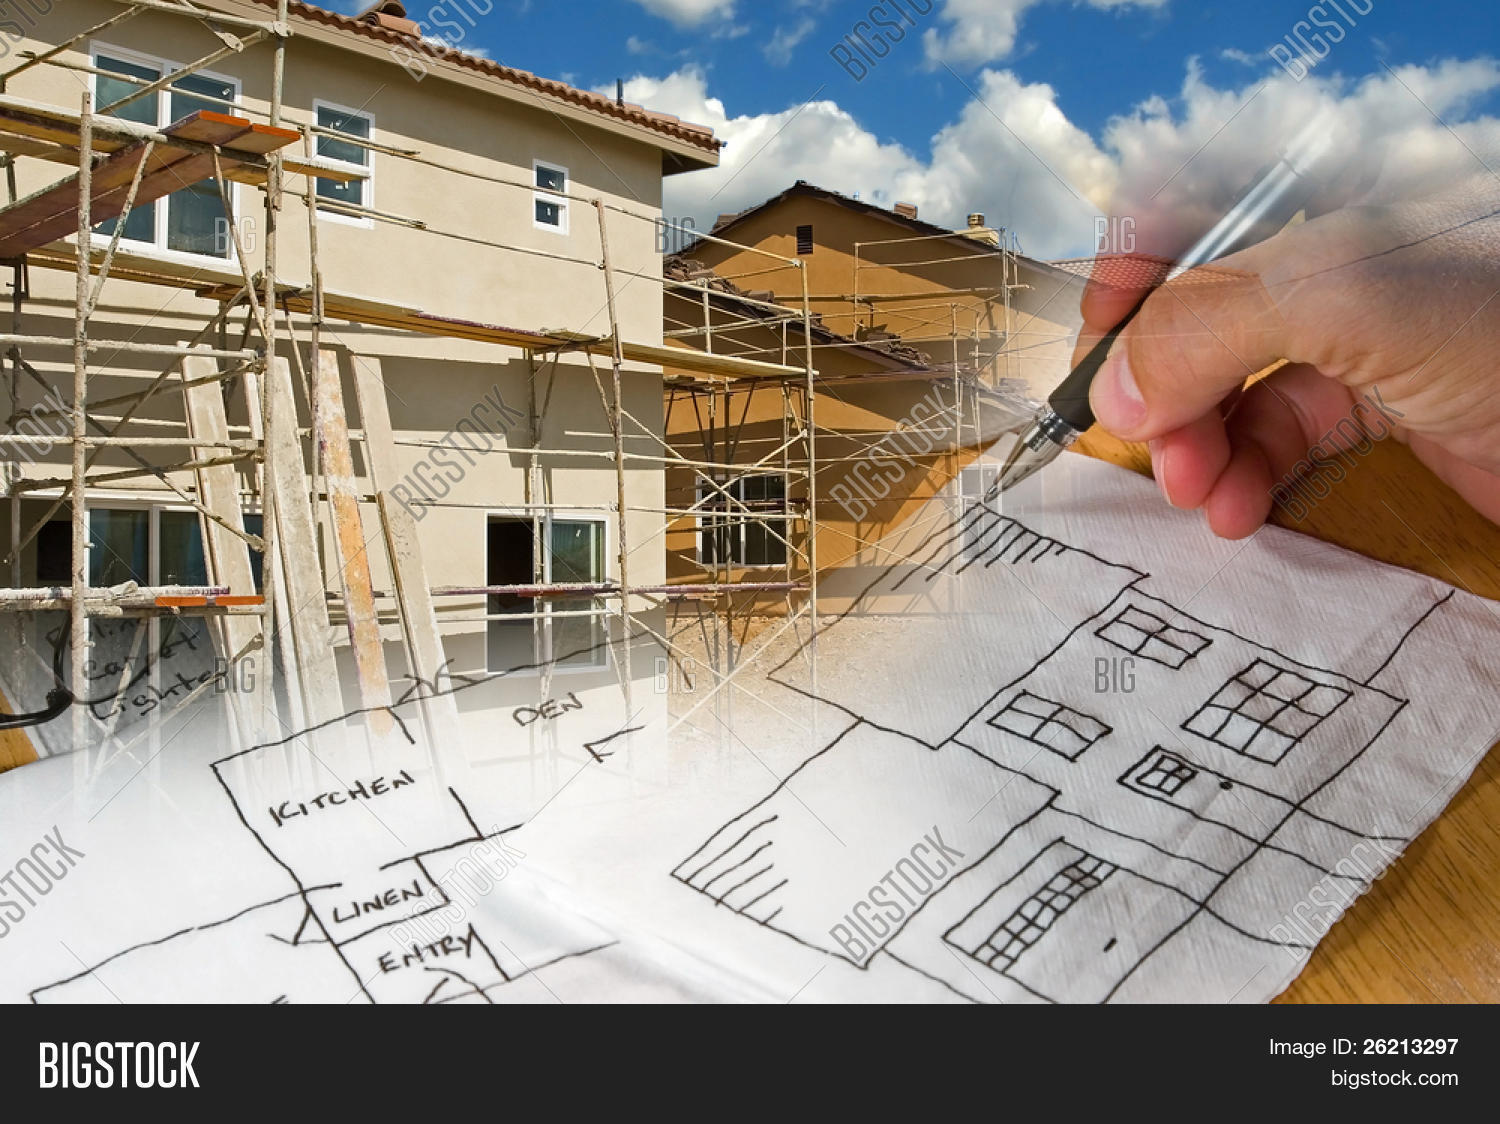 Ready use construction image photo bigstock for Architecture drawing 500 days of summer